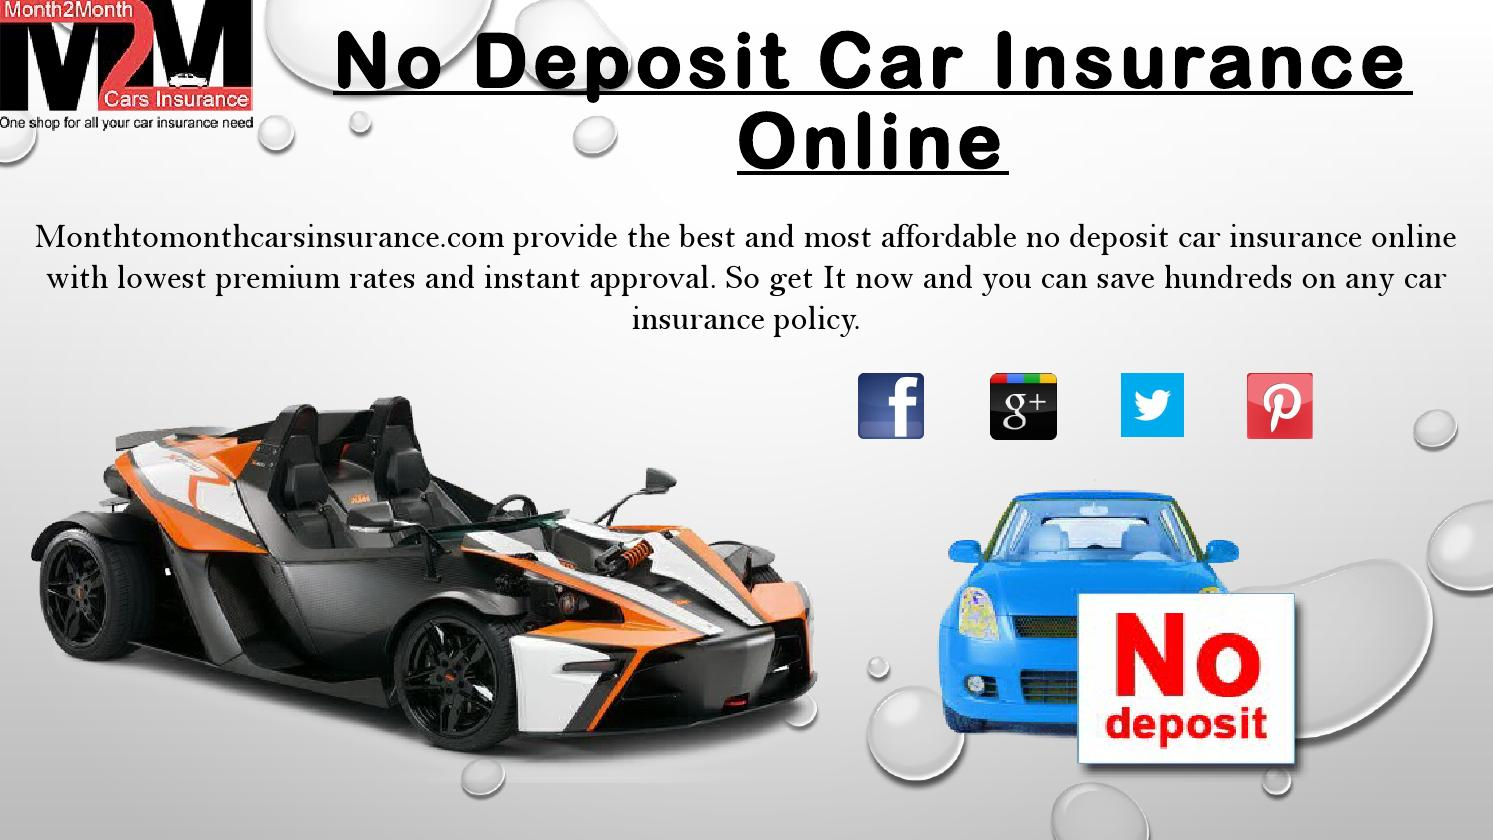 Cheap Car Insurance No Deposit Policy With Online Charges By Month2month007 Issuu